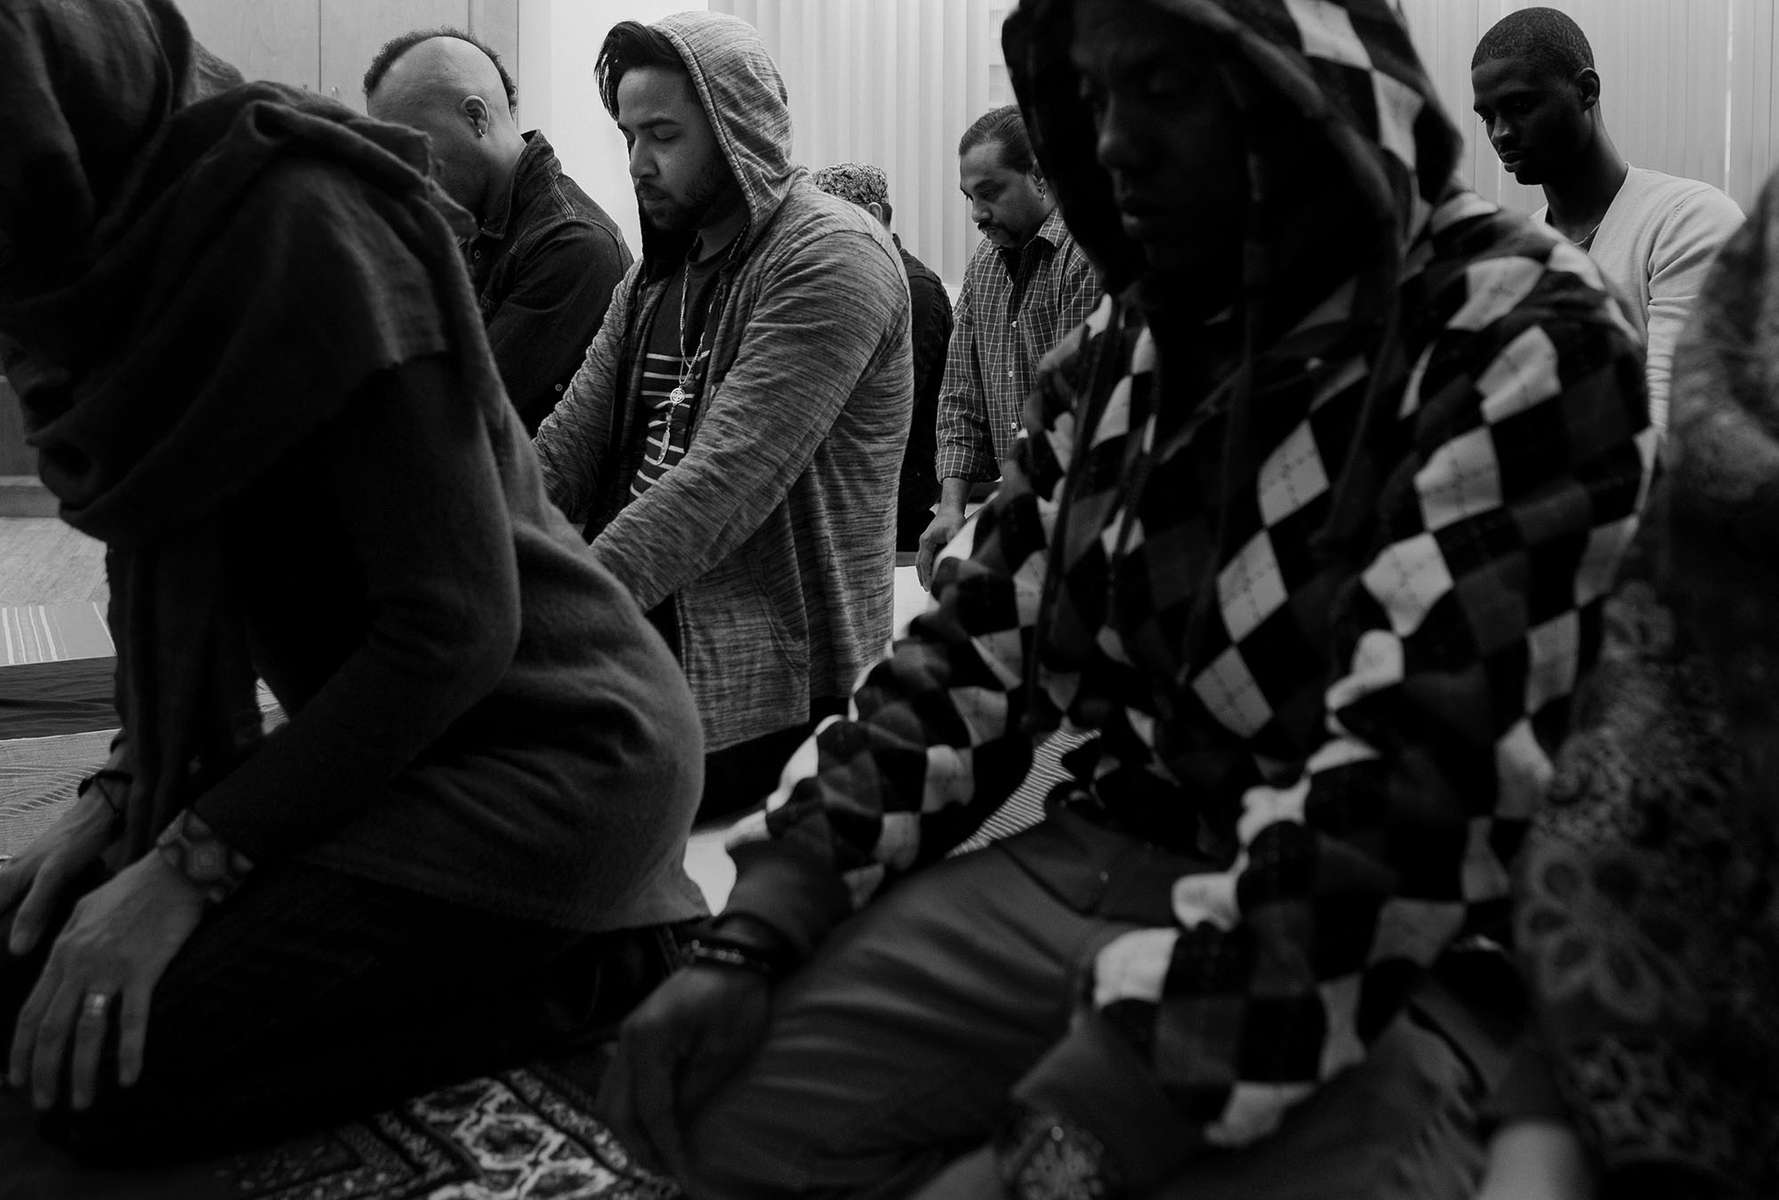 TORONTO, ON: MARCH 28, 2014 Rodney de Roche, centre left, prays at Friday congregational prayers at the Toronto Unity Mosque, on March 28, 2014. Rodney came to Canada from Trinidad and Tobago to escape a gang that was threatening his life an extorting him for money after discovering that he was gay. He had a travel agency in Trinidad, and used his business earnings to pay the gang over $5000. After they returned and demanded more money, which he could not pay, they threatened his life saying that he was a tree that no longer produced fruit, so they were going to cut it down.He had a positive hearing in April and will remain in Canada.